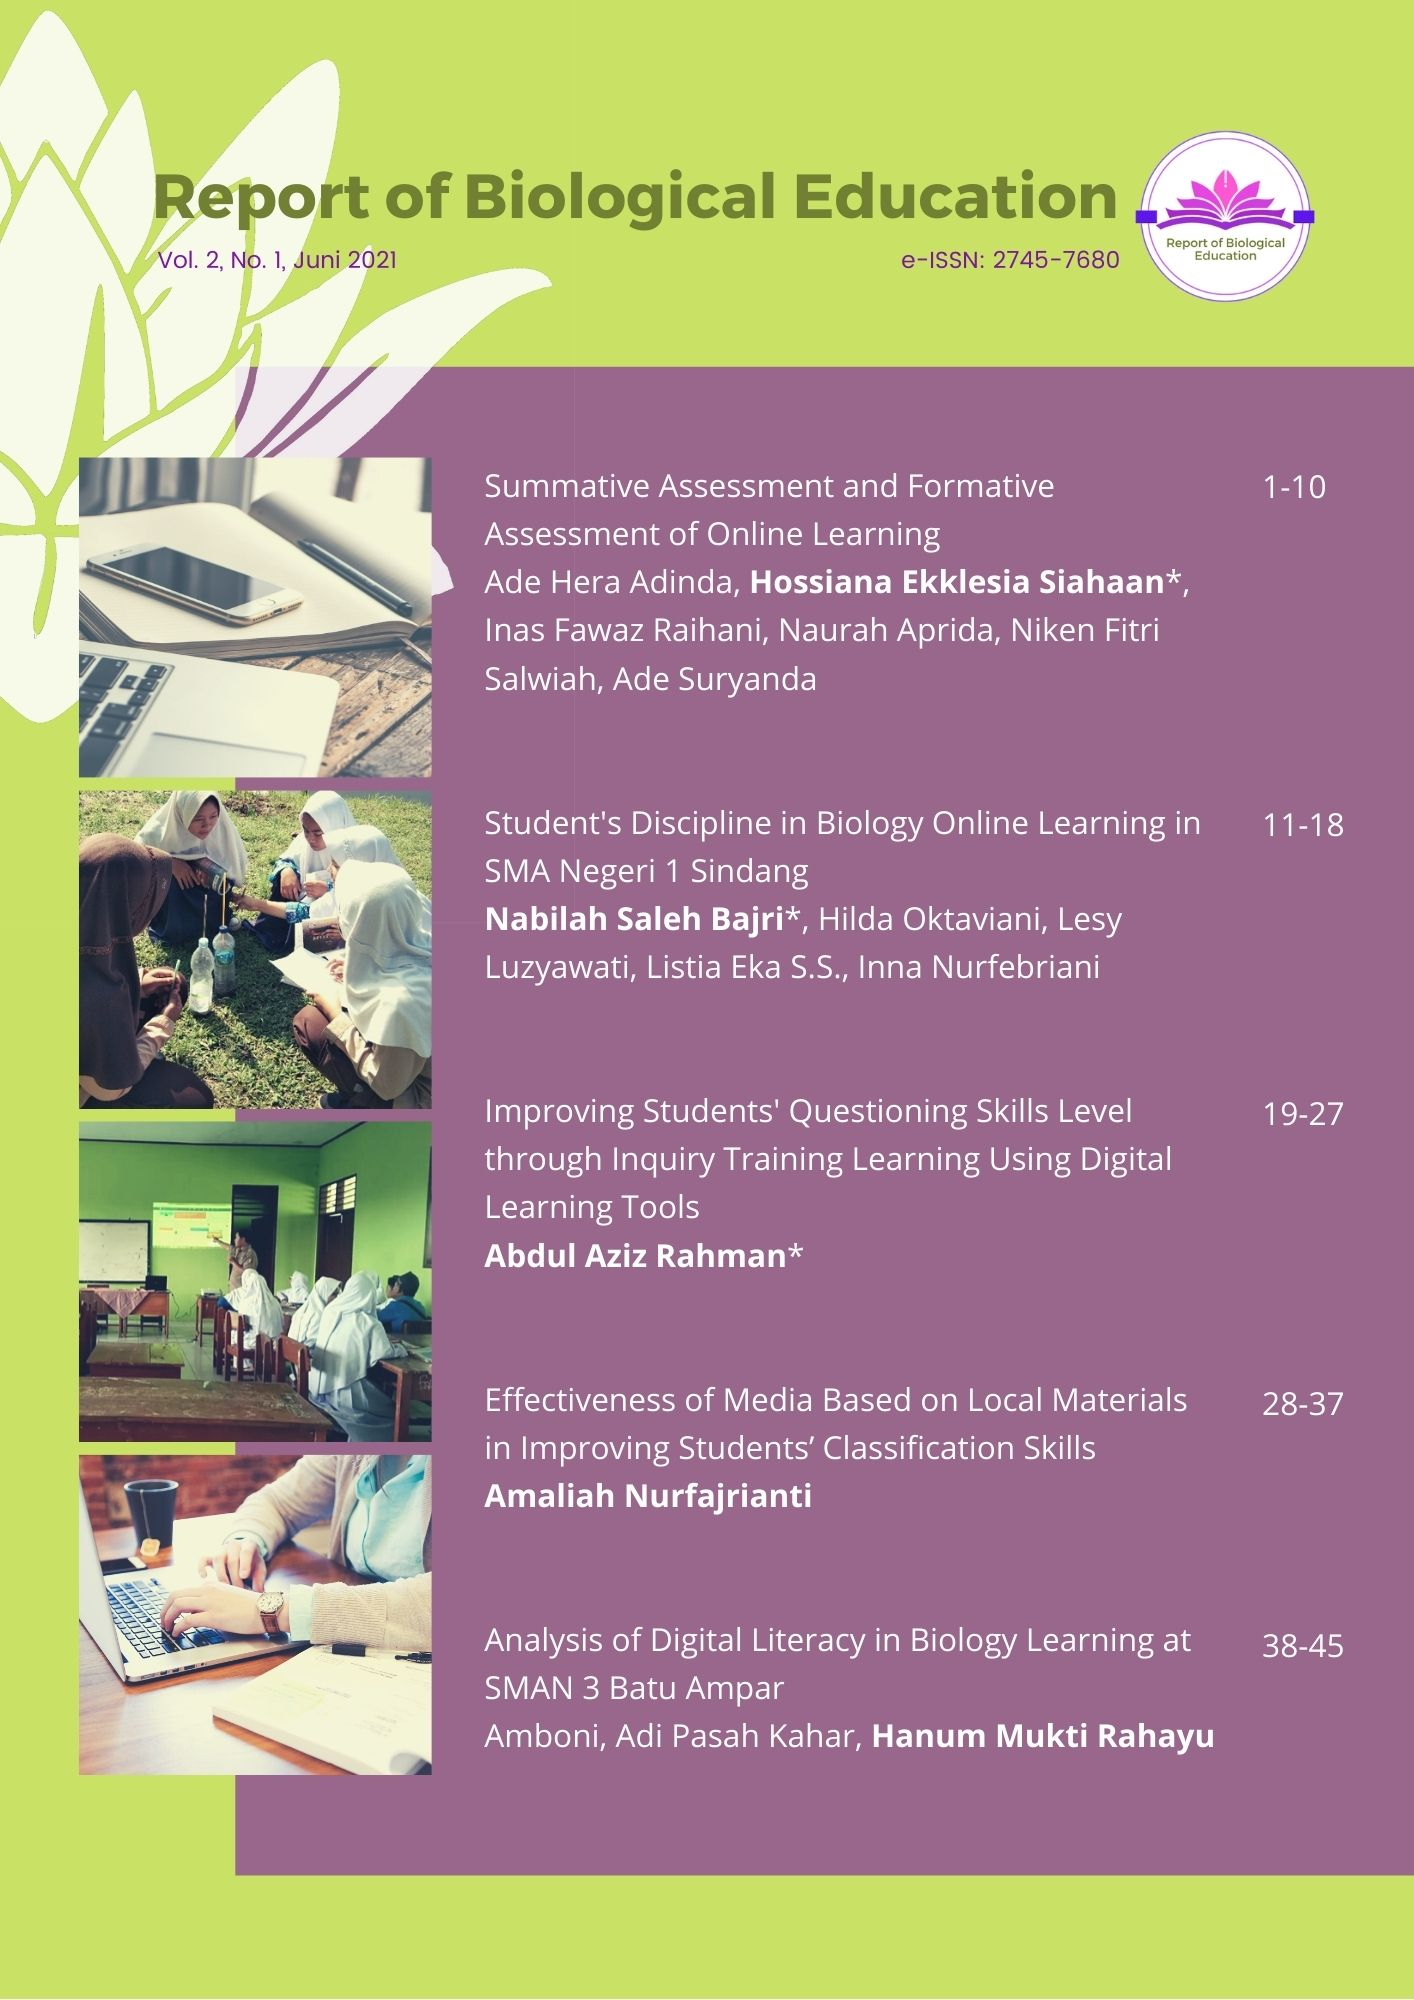 View Vol. 2 No. 1 (2021): Report of Biological Education